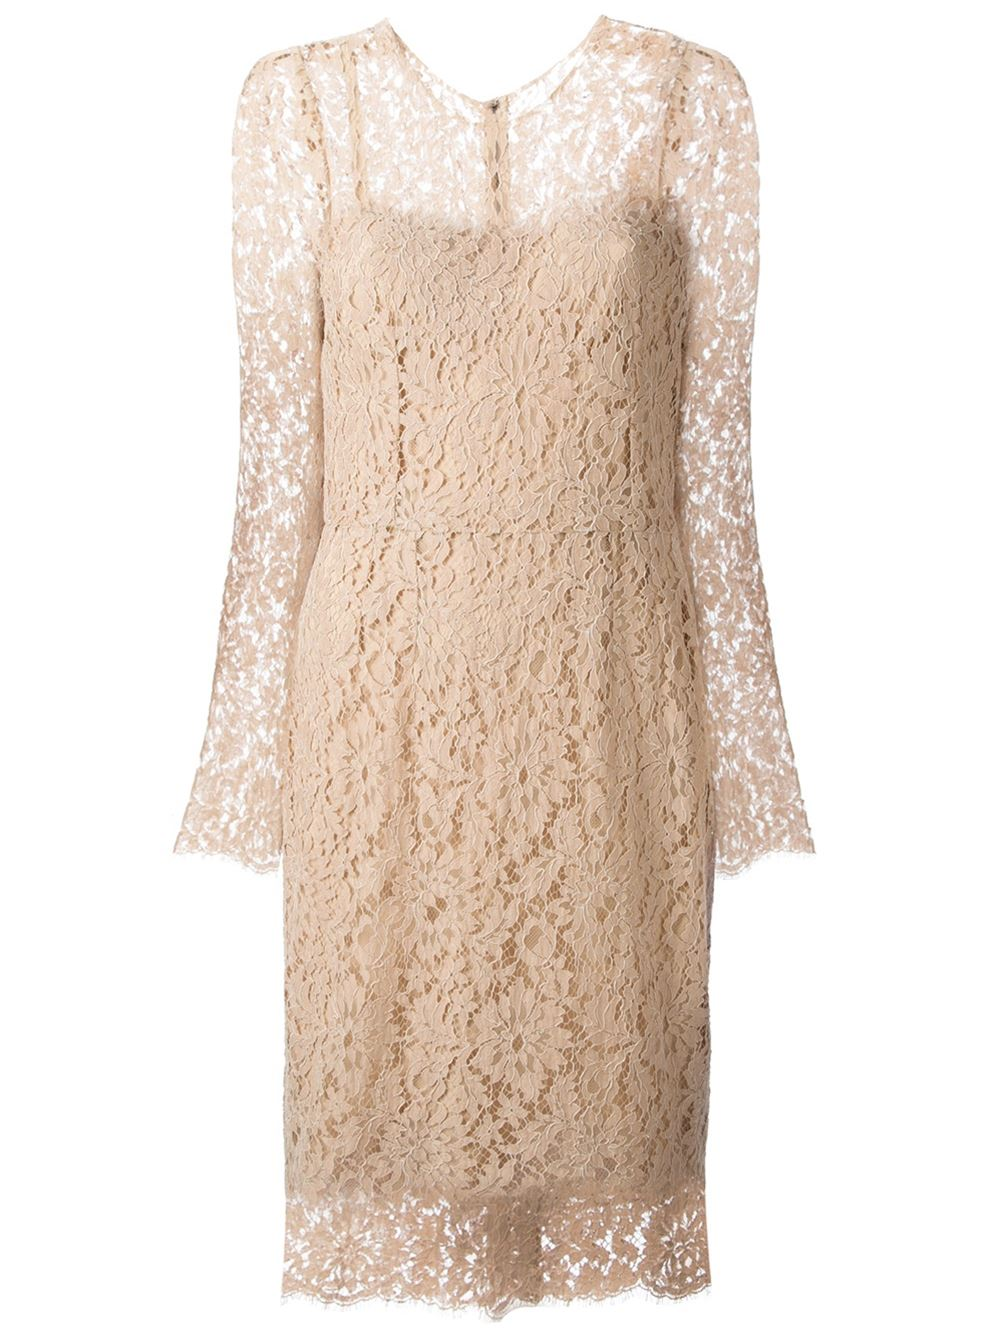 Dolce & Gabbana Lace Dress - Julian Fashion - Farfetch.com